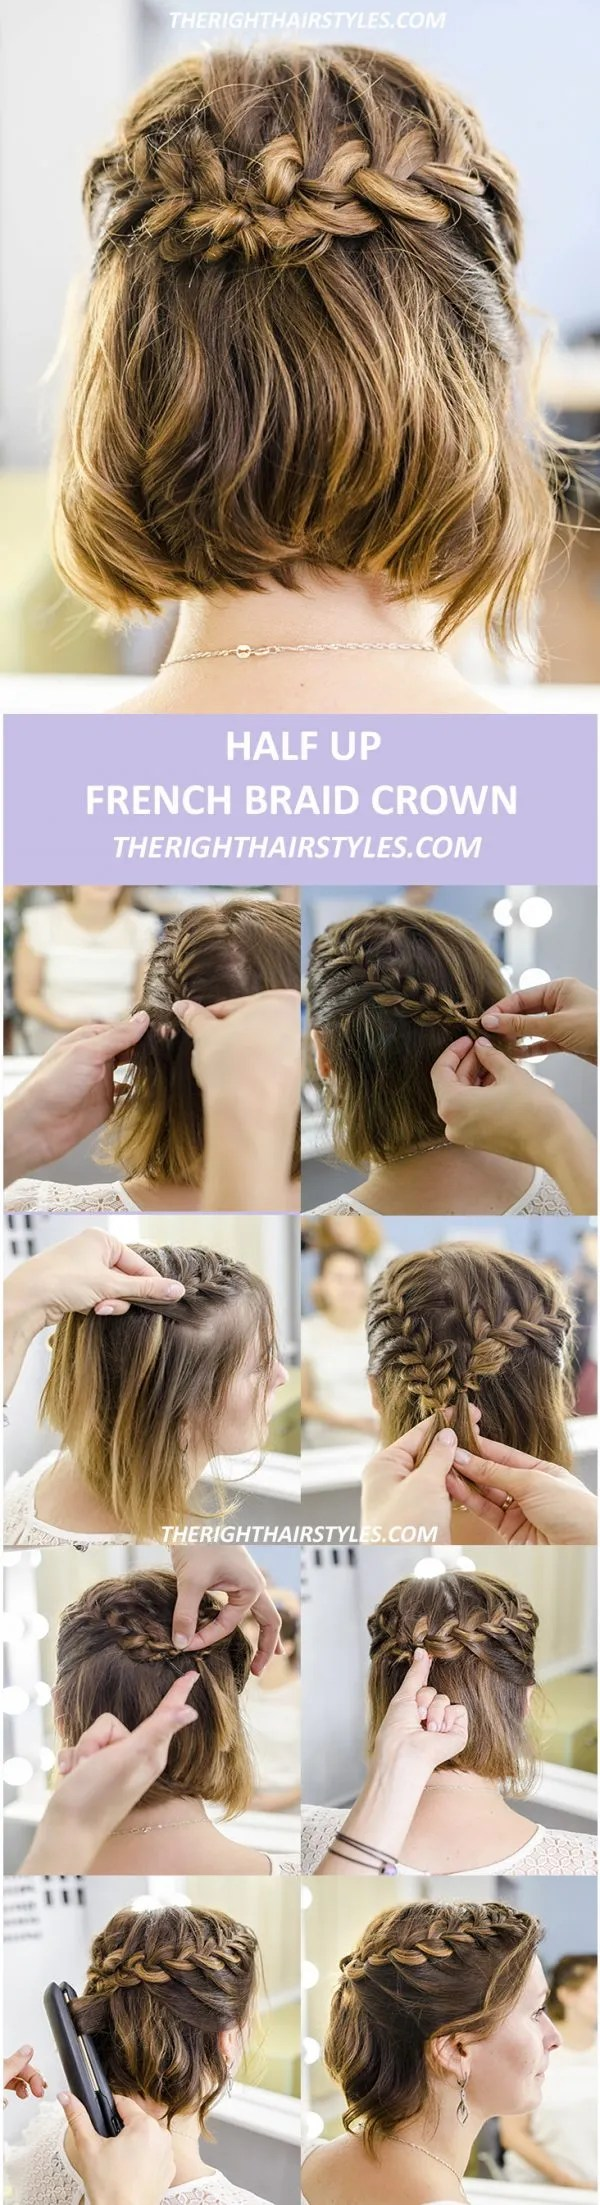 Half Up French Braid Crown For Short Hair